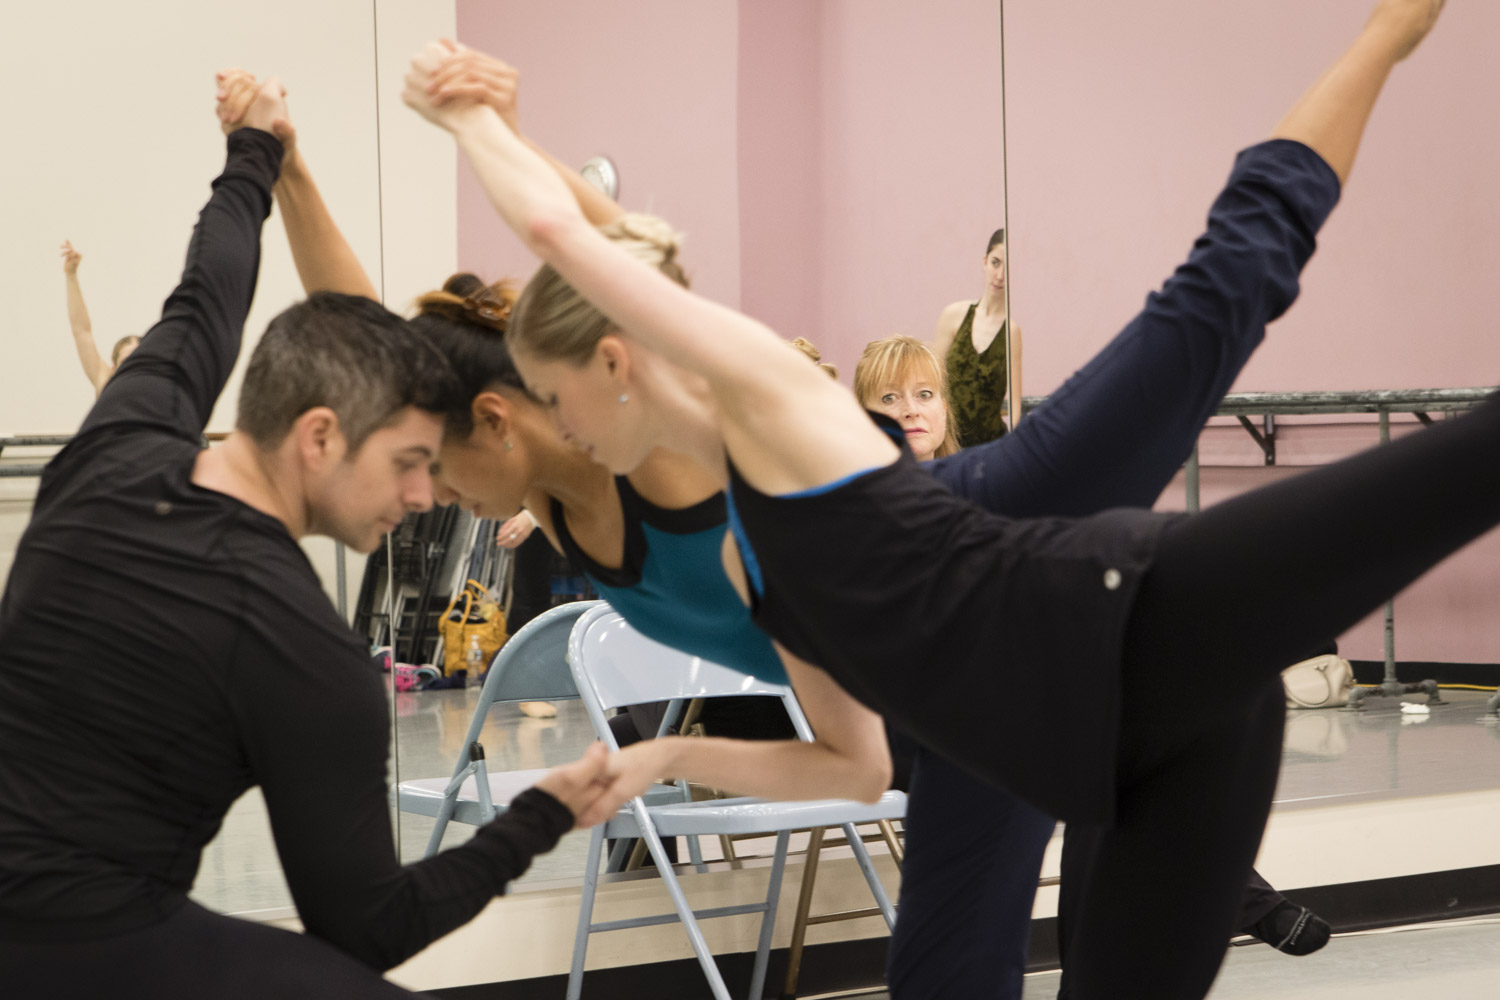 Bowen McCauley Dance Co. rehearsal at MD Youth Ballet, November 29, 2016. Photo: John St Hilaire | Lightenough.com